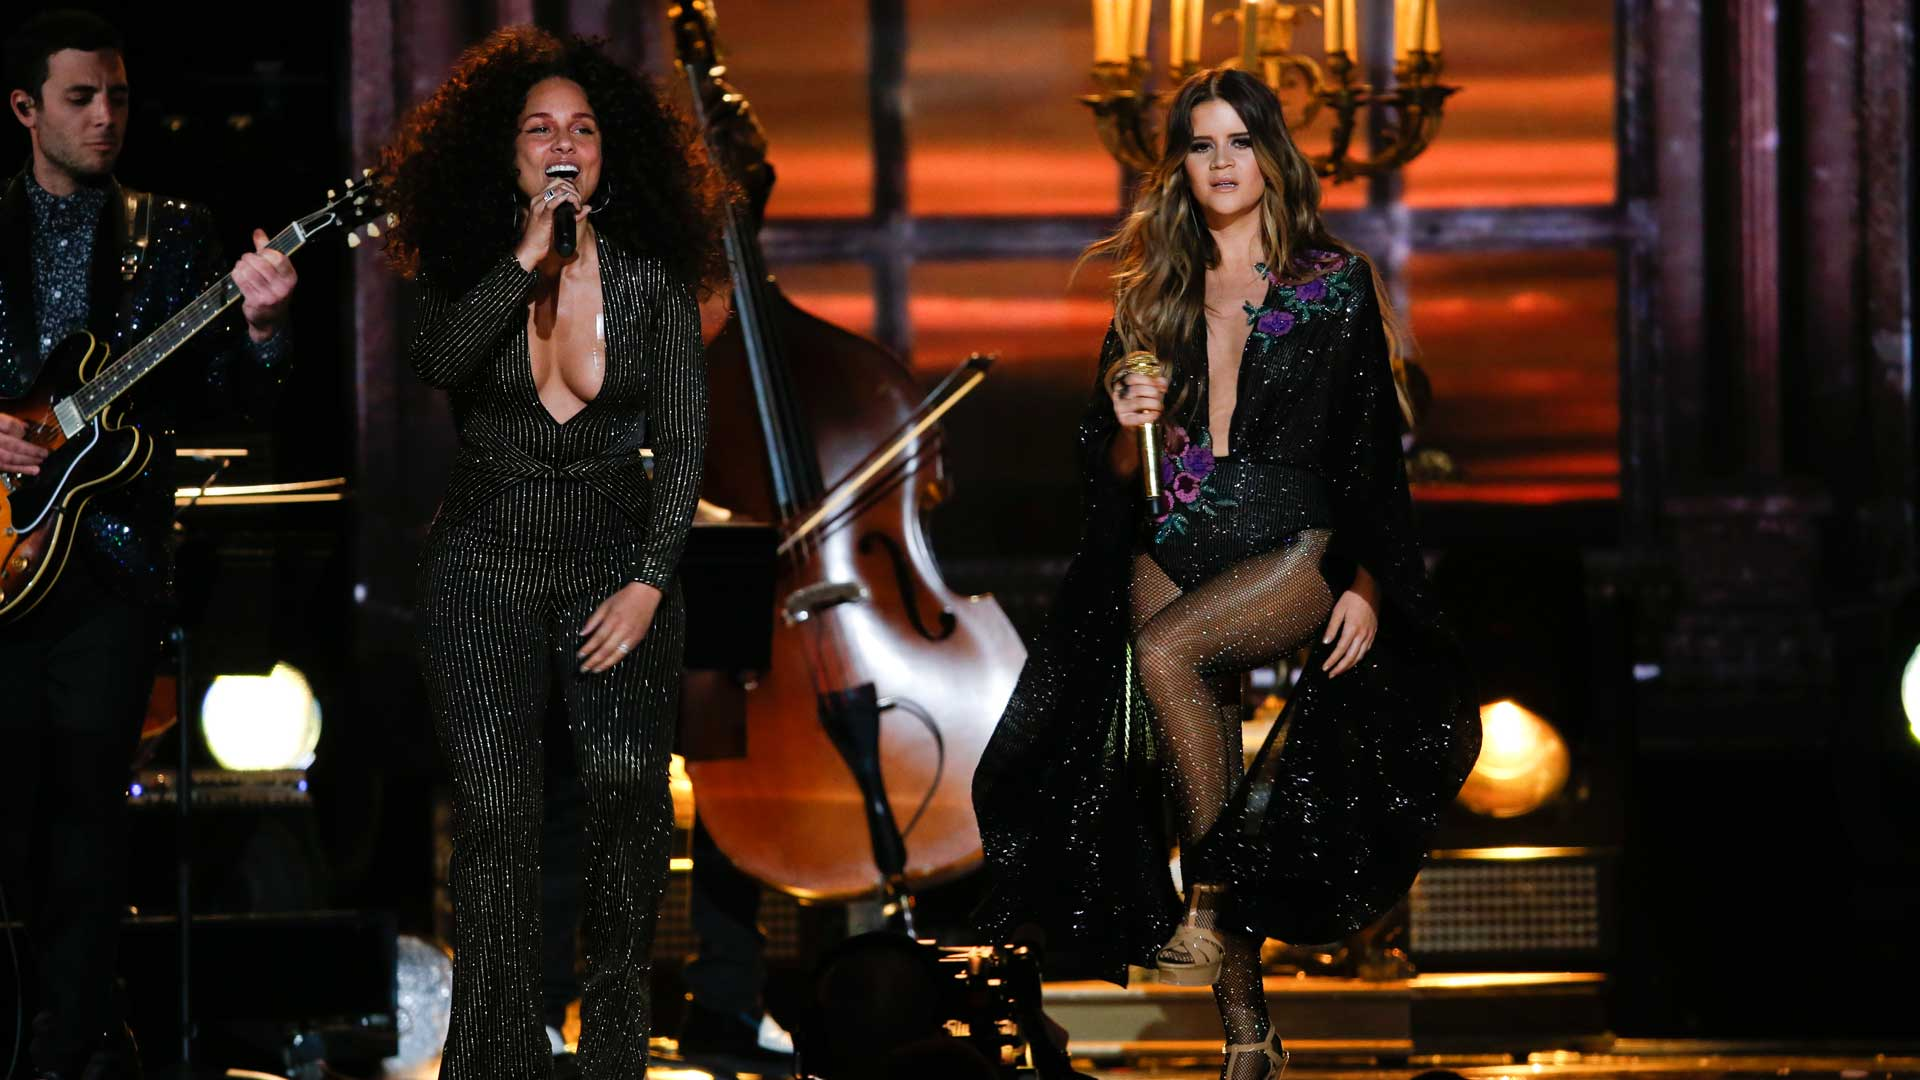 Maren Morris featuring Alicia Keys perform